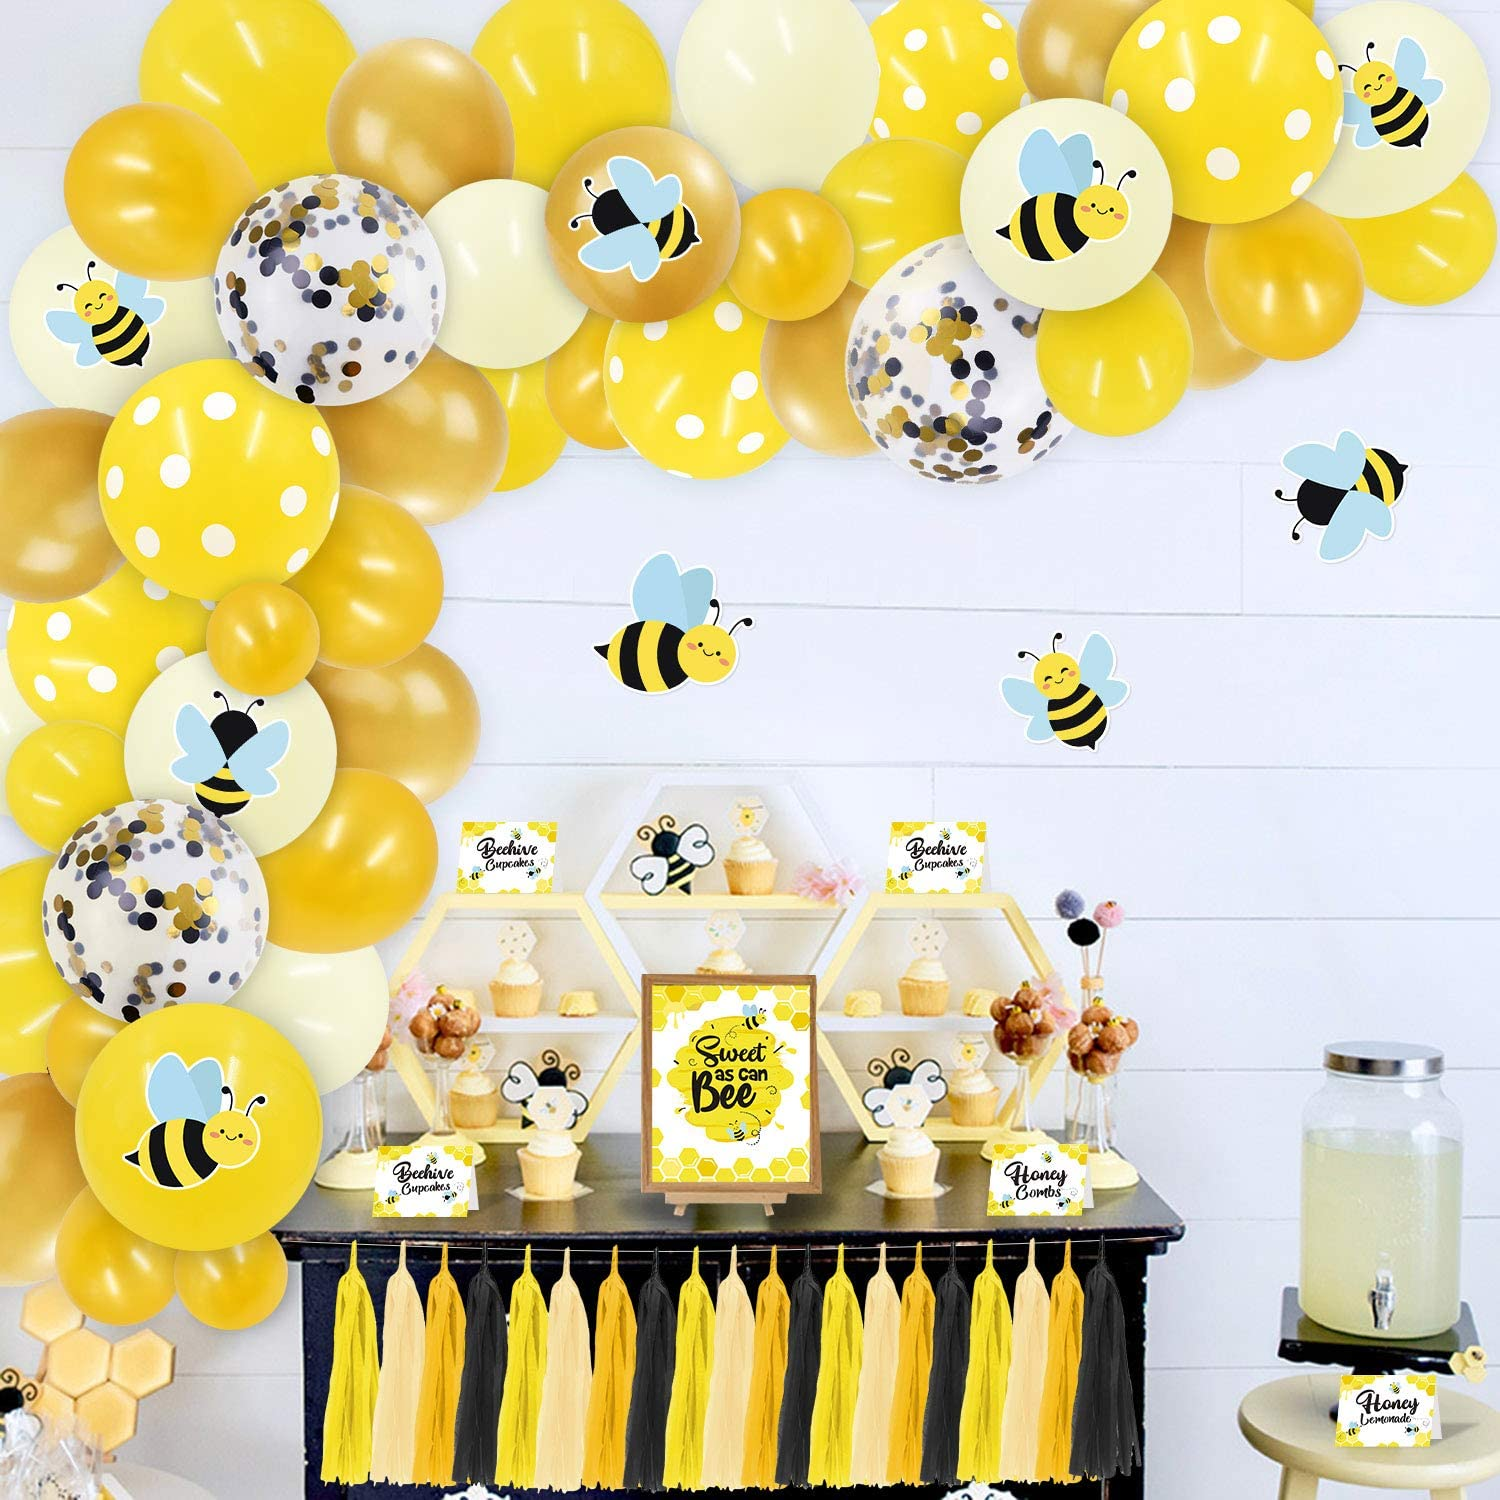 Bee Baby Shower Party Decor(138pcs)with Food Labels,Bee Bar Sign,Thank You Tags,Tissue Paper Tassels,Cardstock Stickers,Balloon Garland for Bumblebee Theme Mommy to Bee What Will It Bee Baby Shower